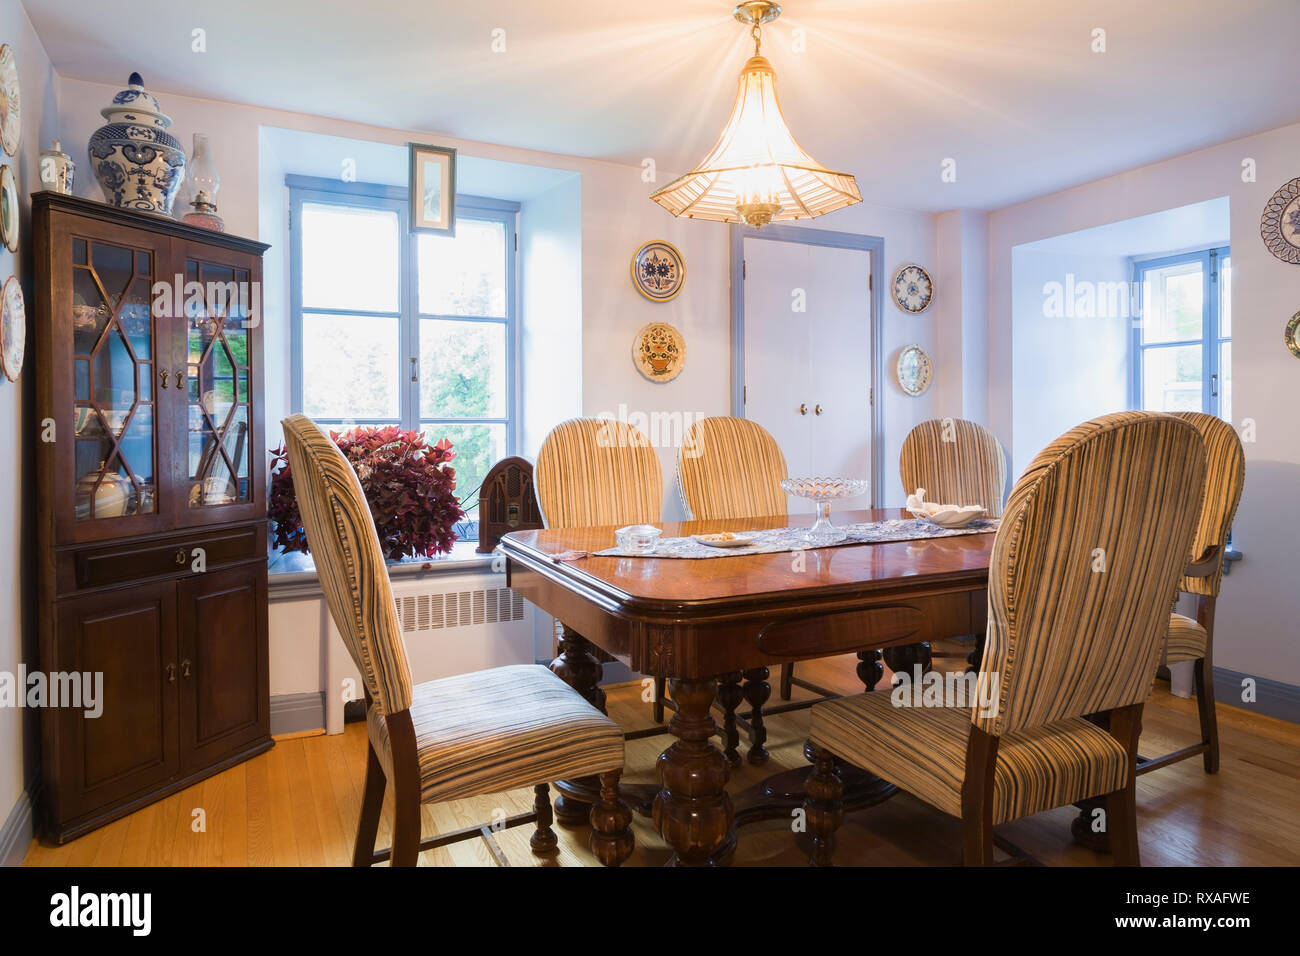 Walnut dining table with upholstered high-back chairs in dining room inside an old 1839 Canadiana fieldstone house, Quebec, Canada. This image is Prop - Stock Image